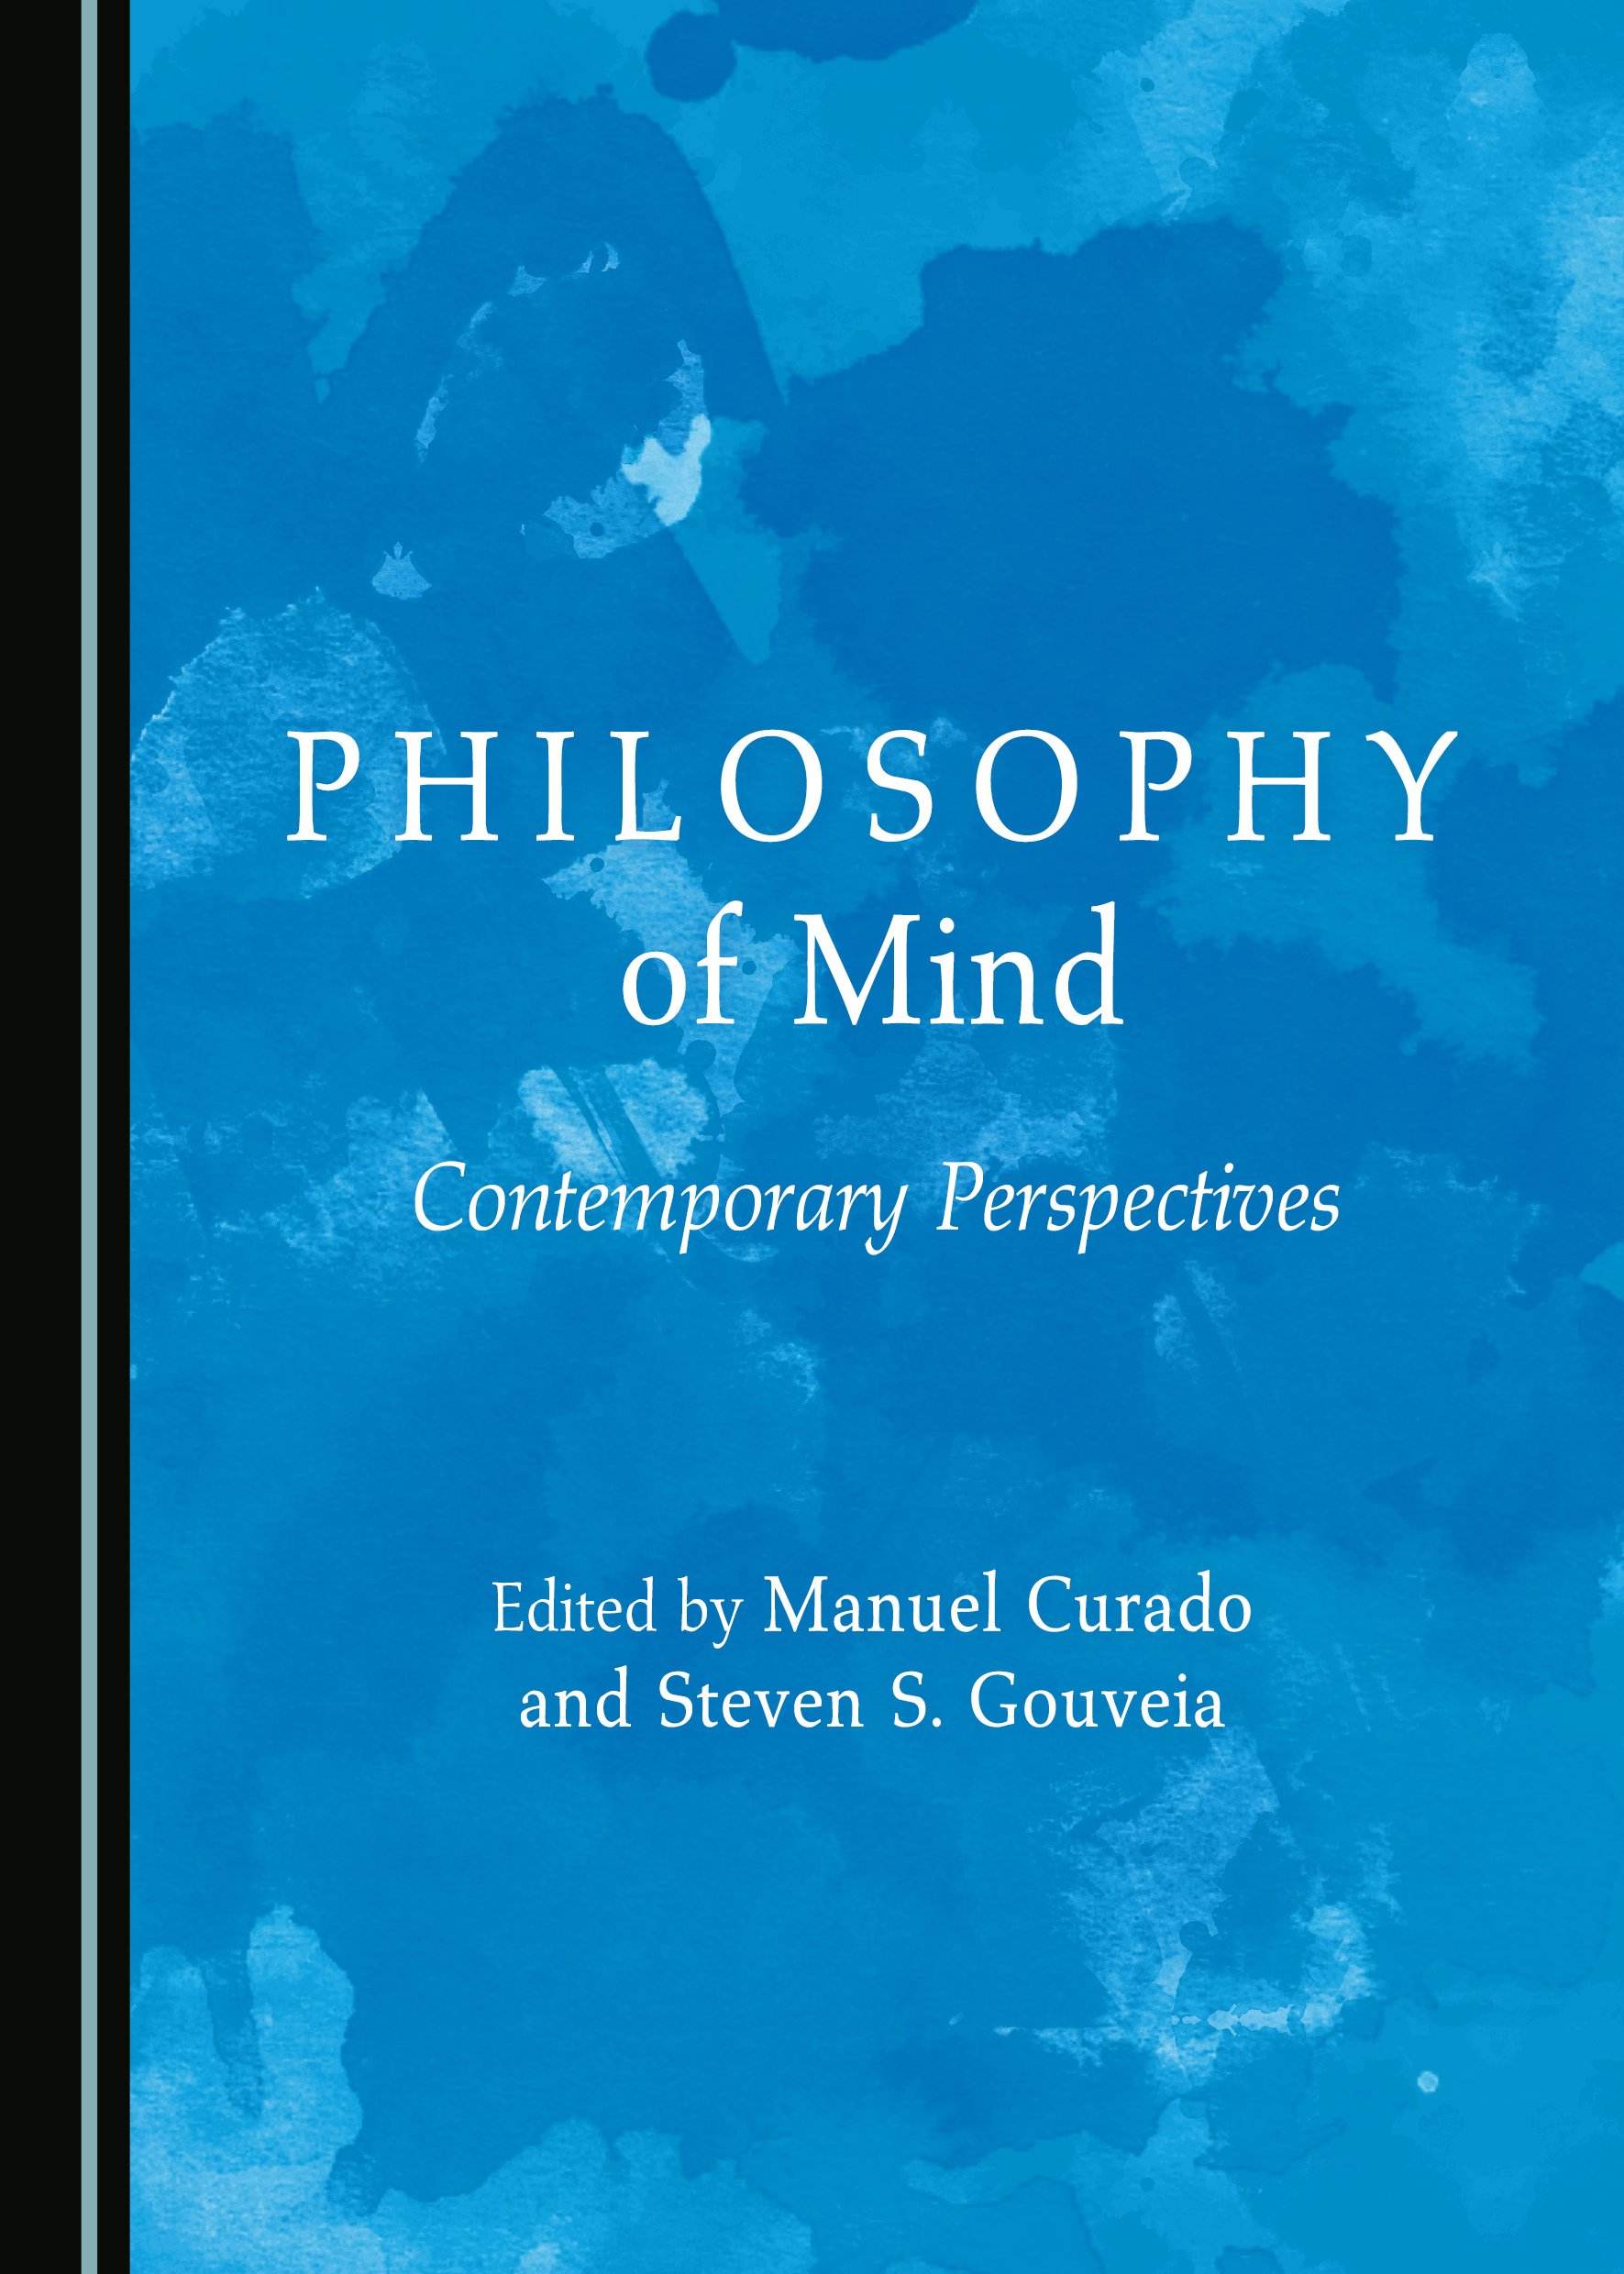 Philosophy of Mind: Contemporary Perspectives